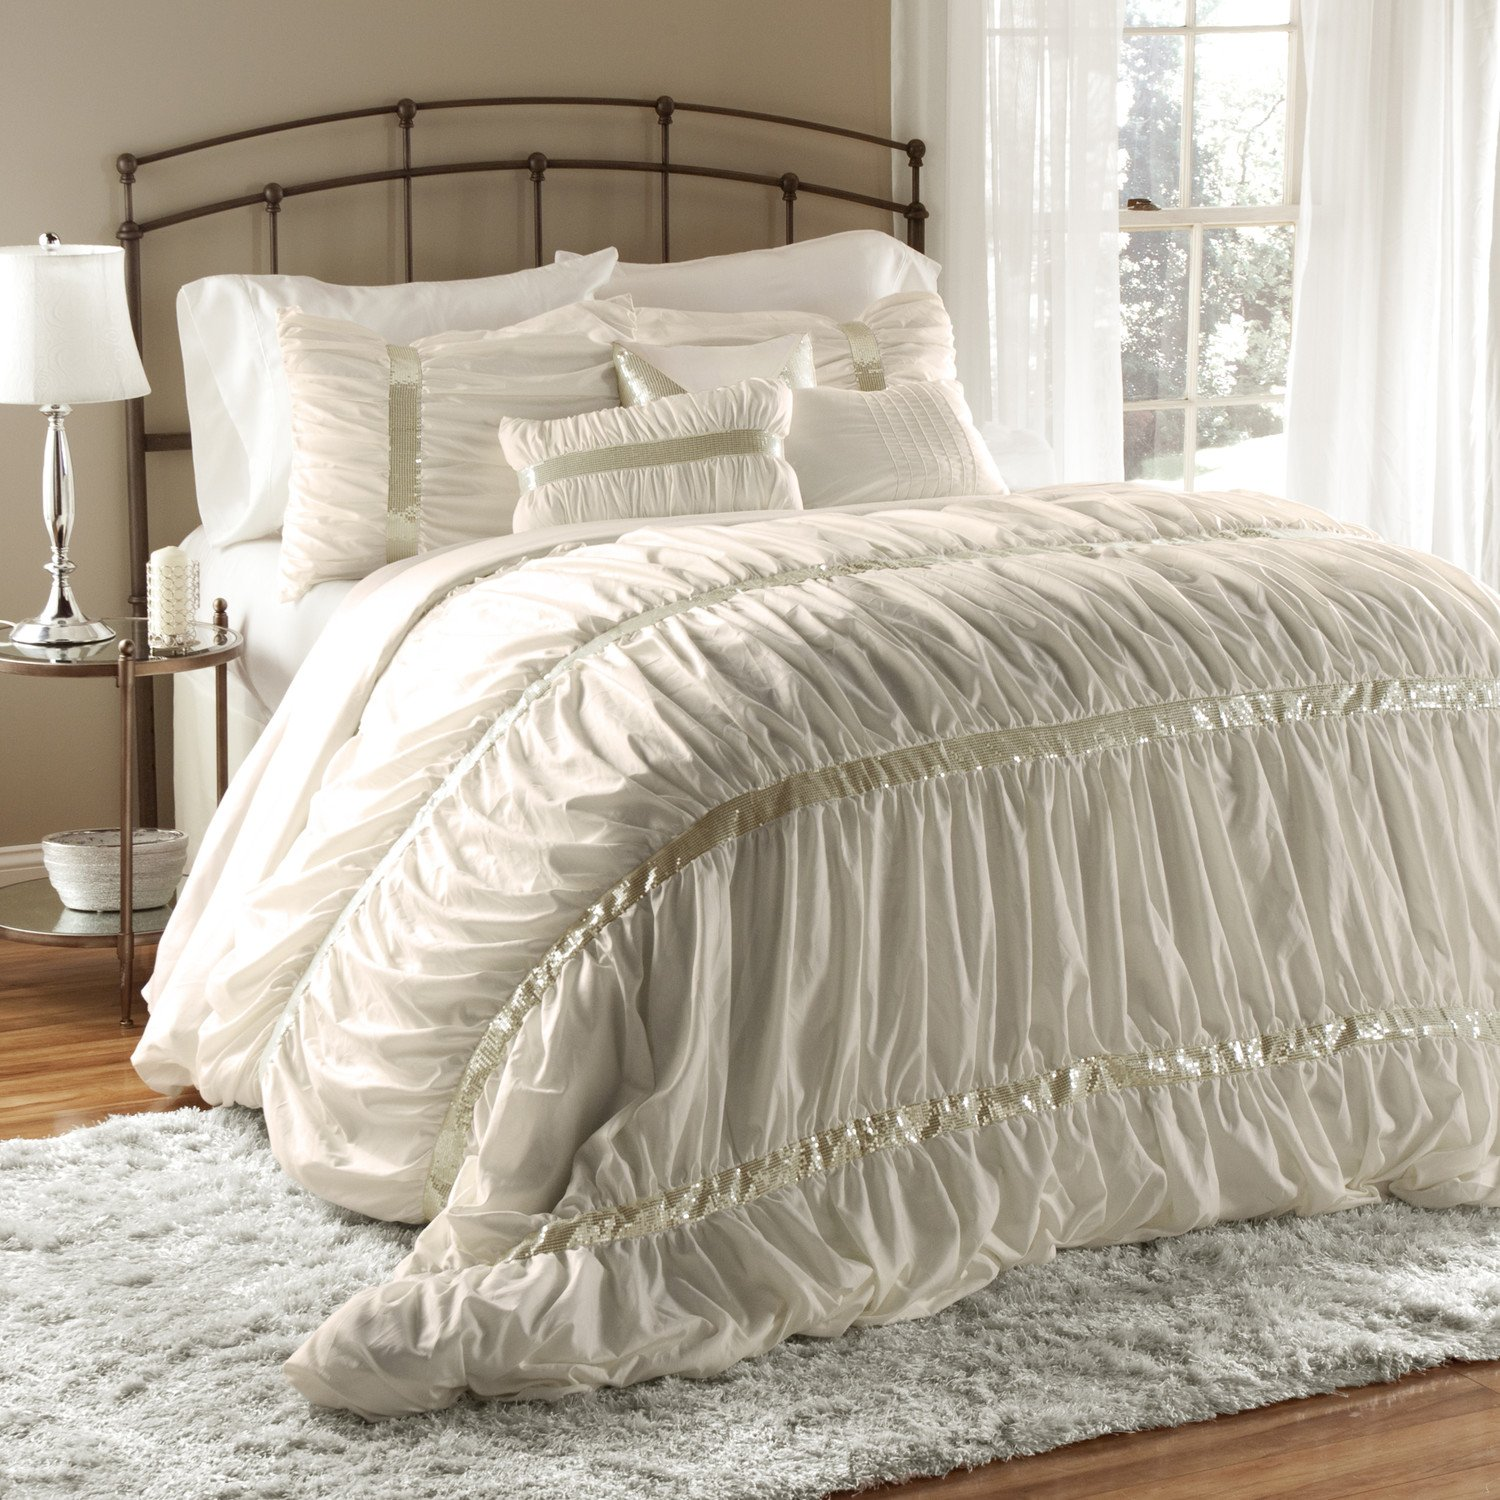 Bedding Decor: Home Furniture Design